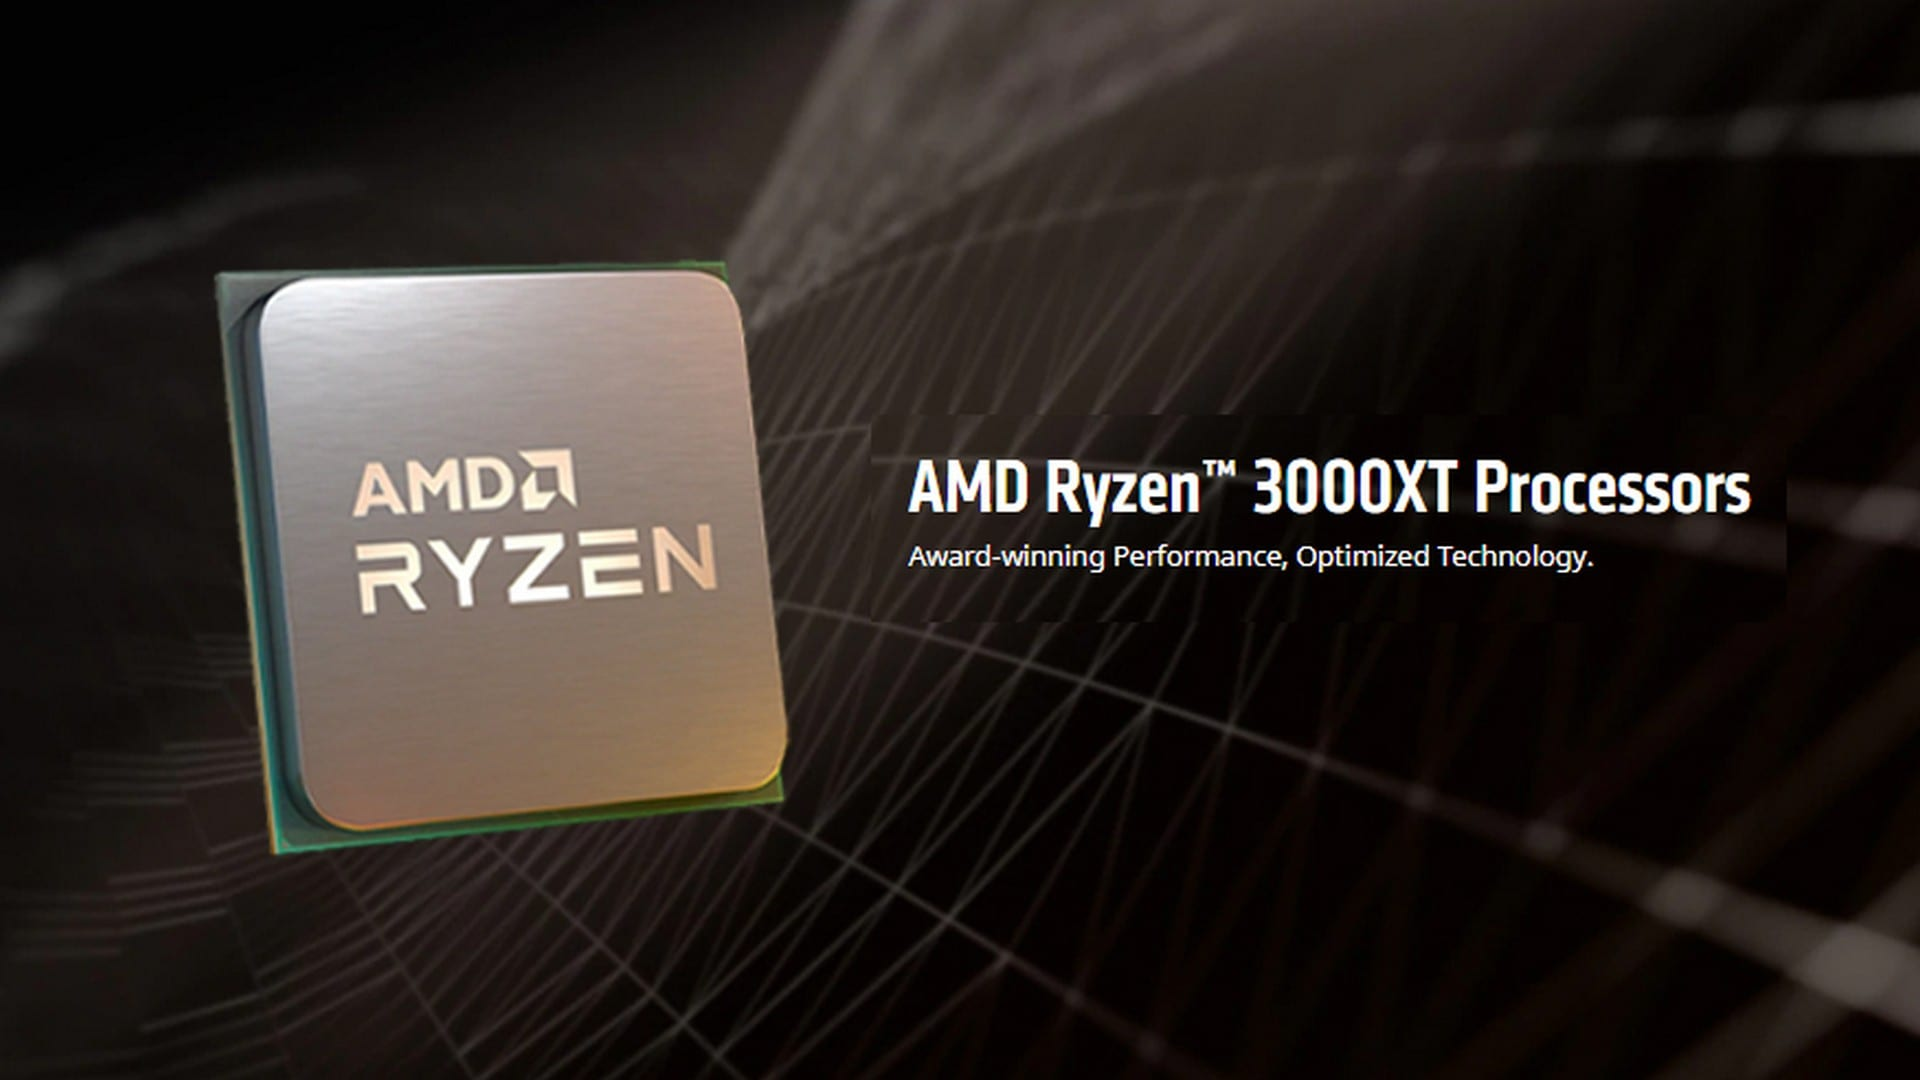 AMD Launches Ryzen 3000XT Desktop Processors and Equipped to Win Game Bundle